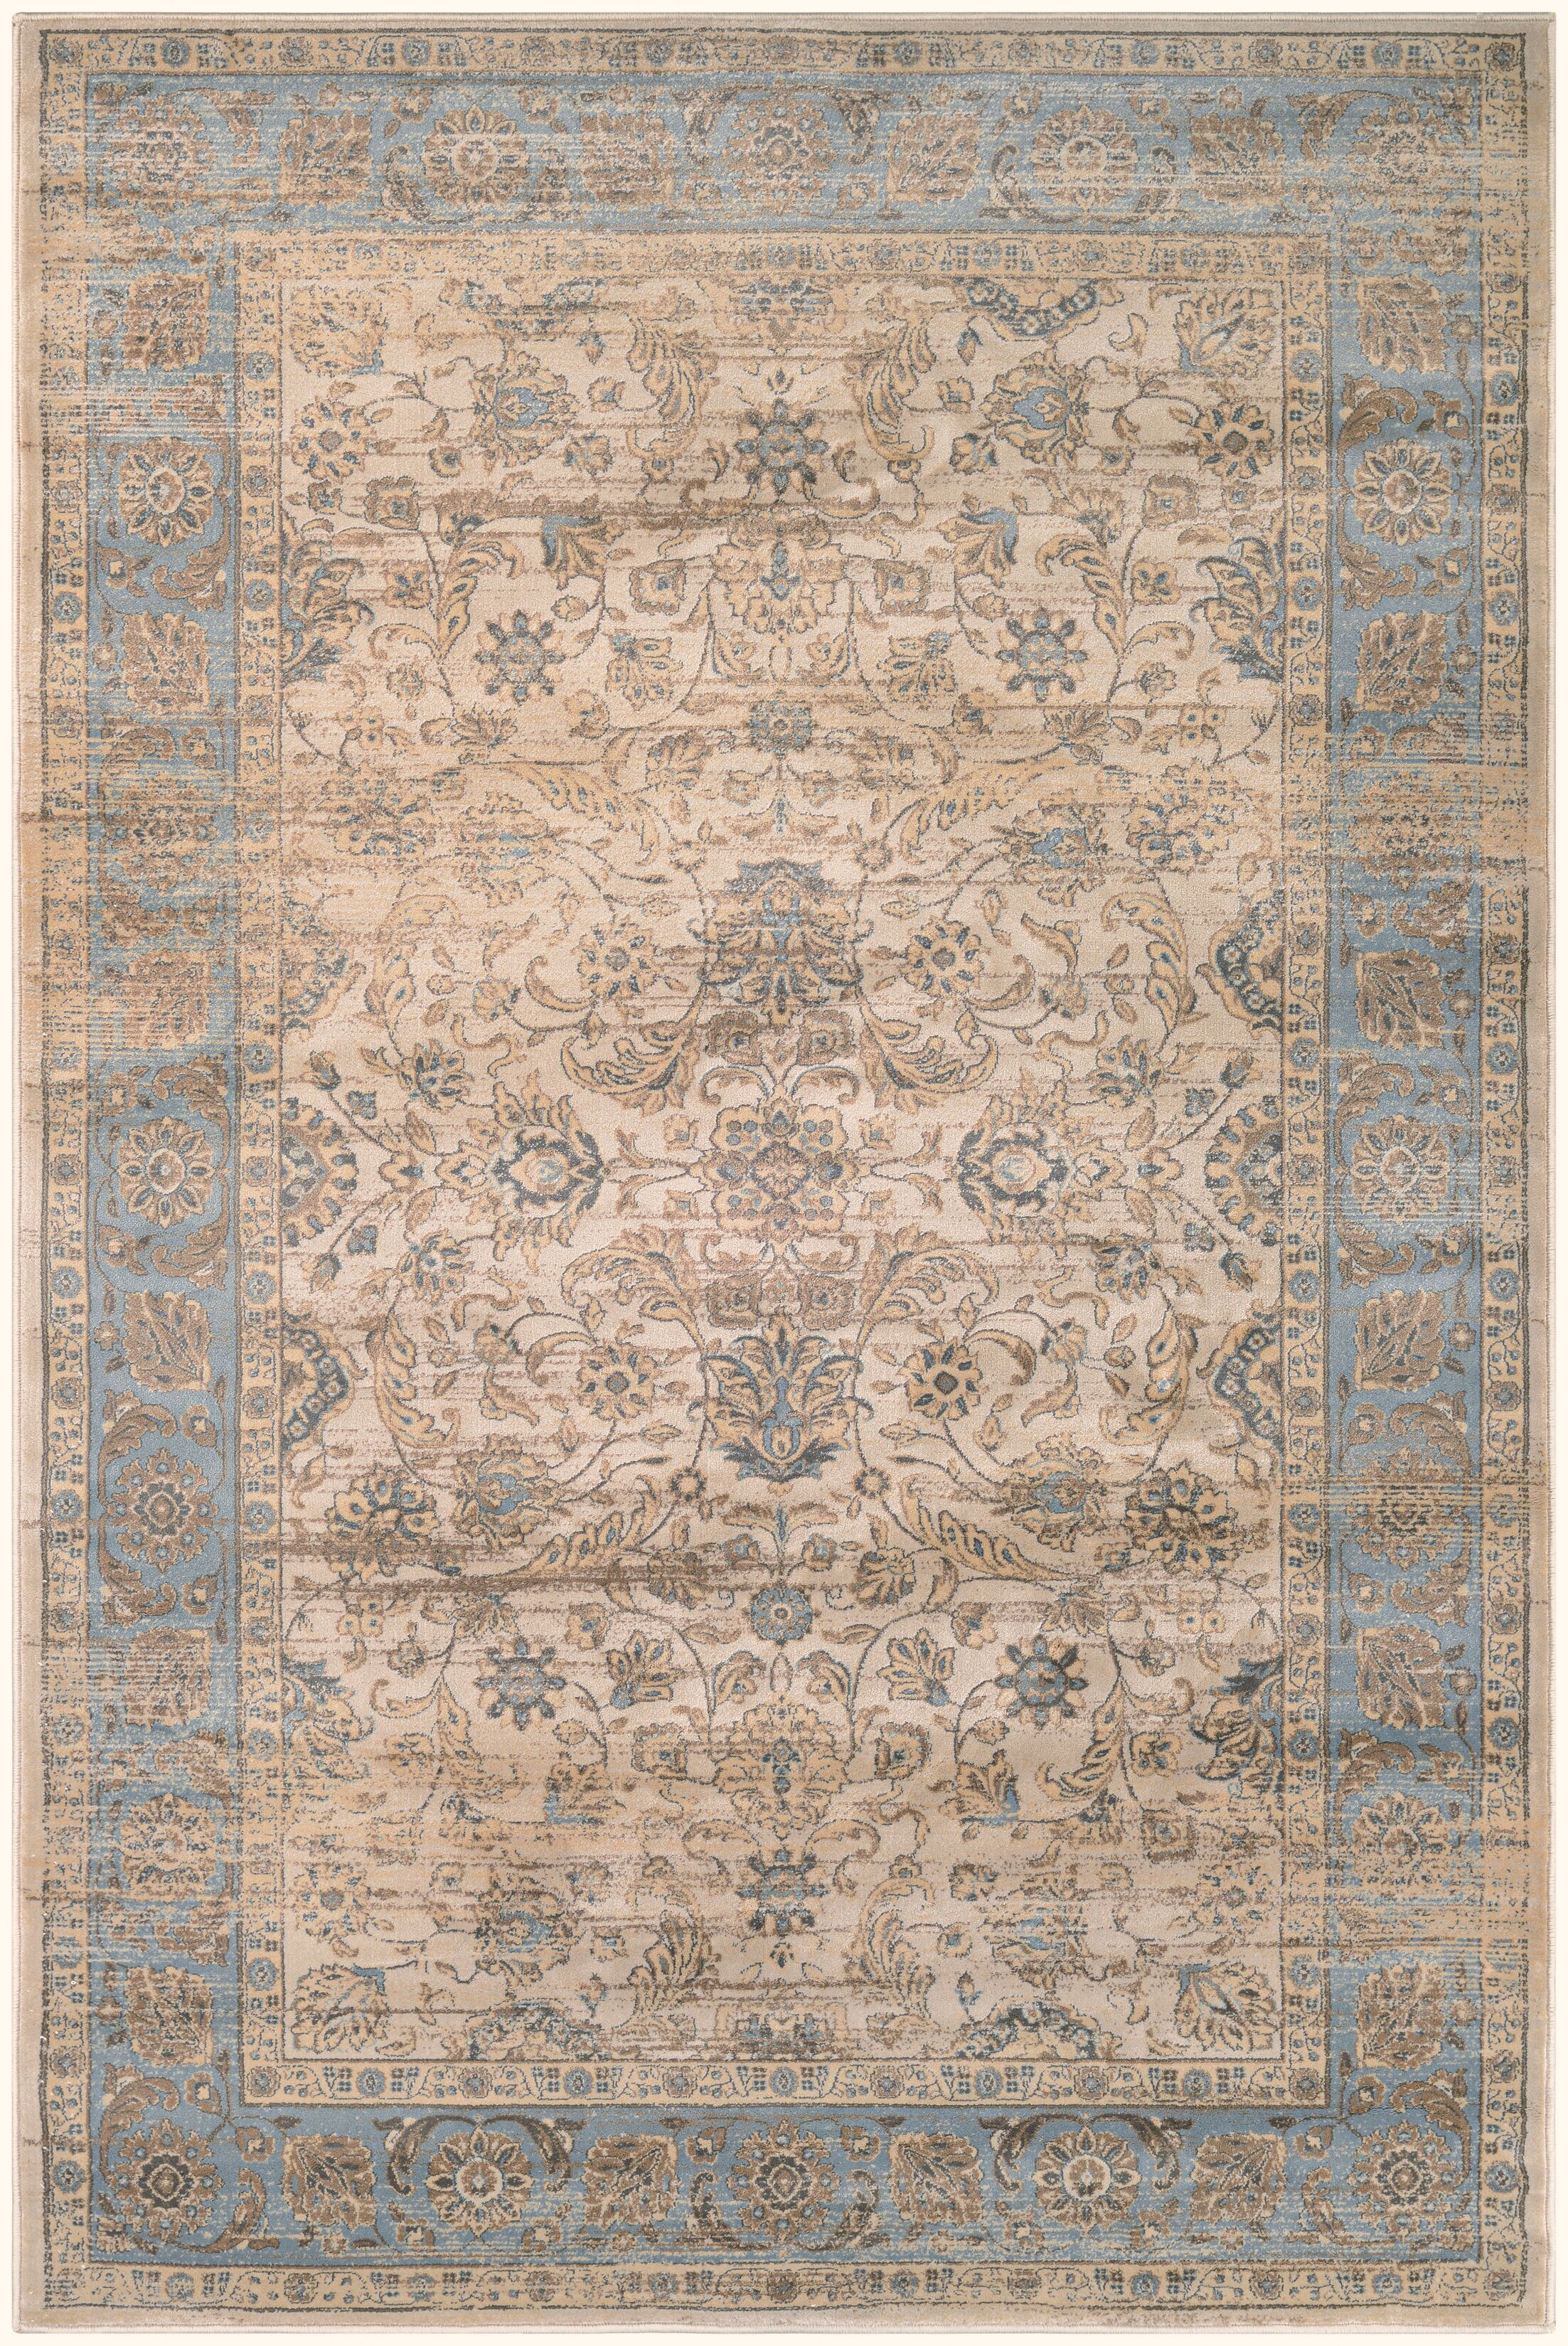 Cotswolds Light Blue/Oatmeal Area Rug Rug Size: Rectangle 7'10